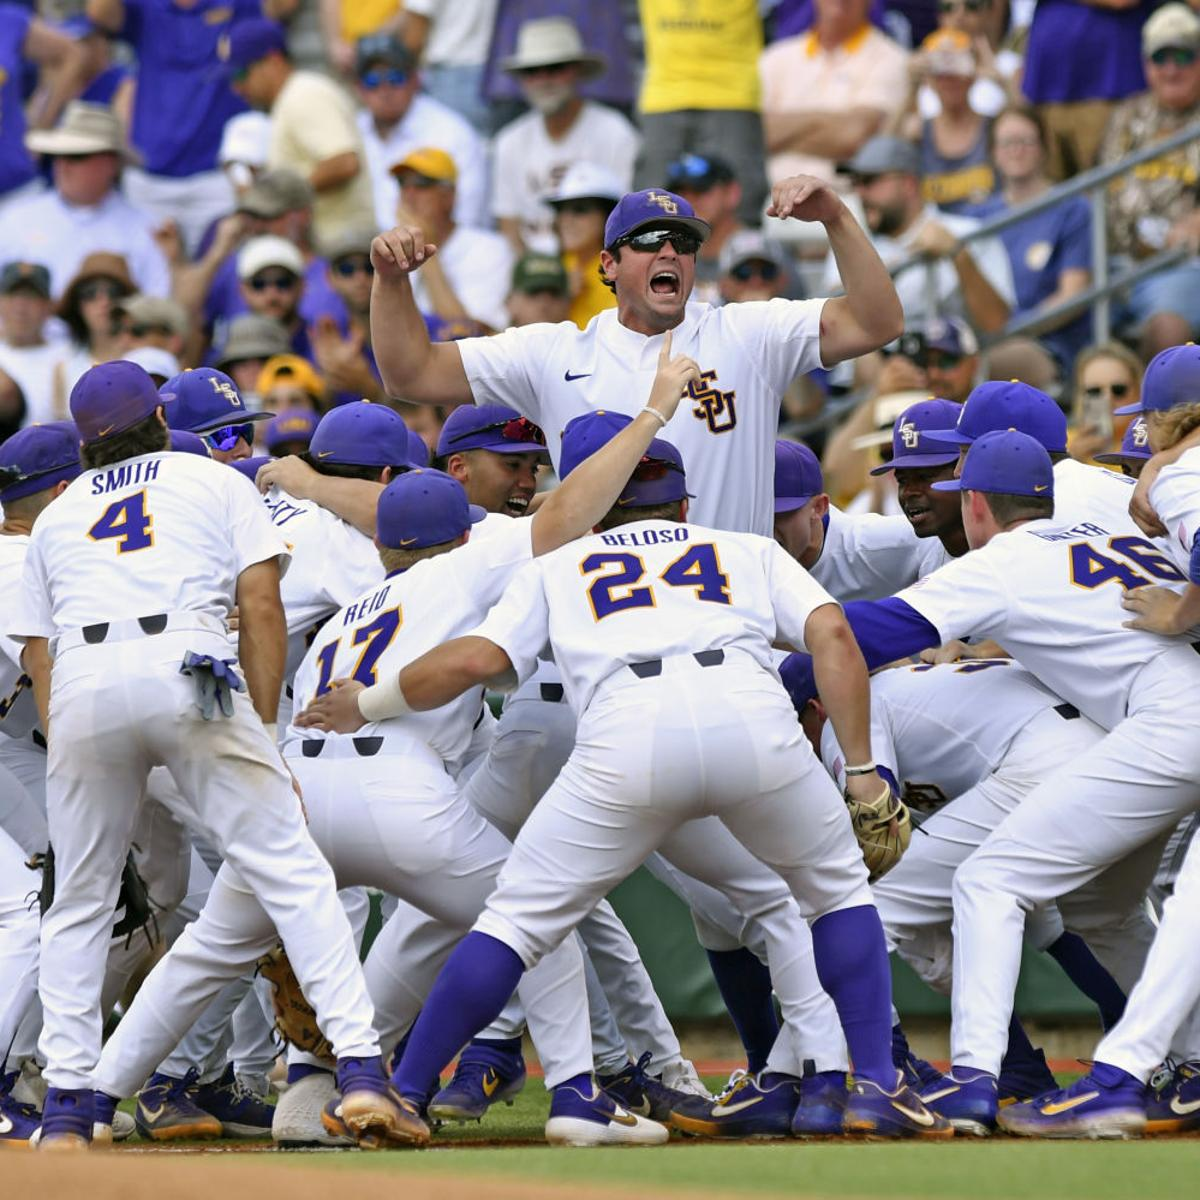 See the schedule for LSU baseball at Houston's Minute Maid